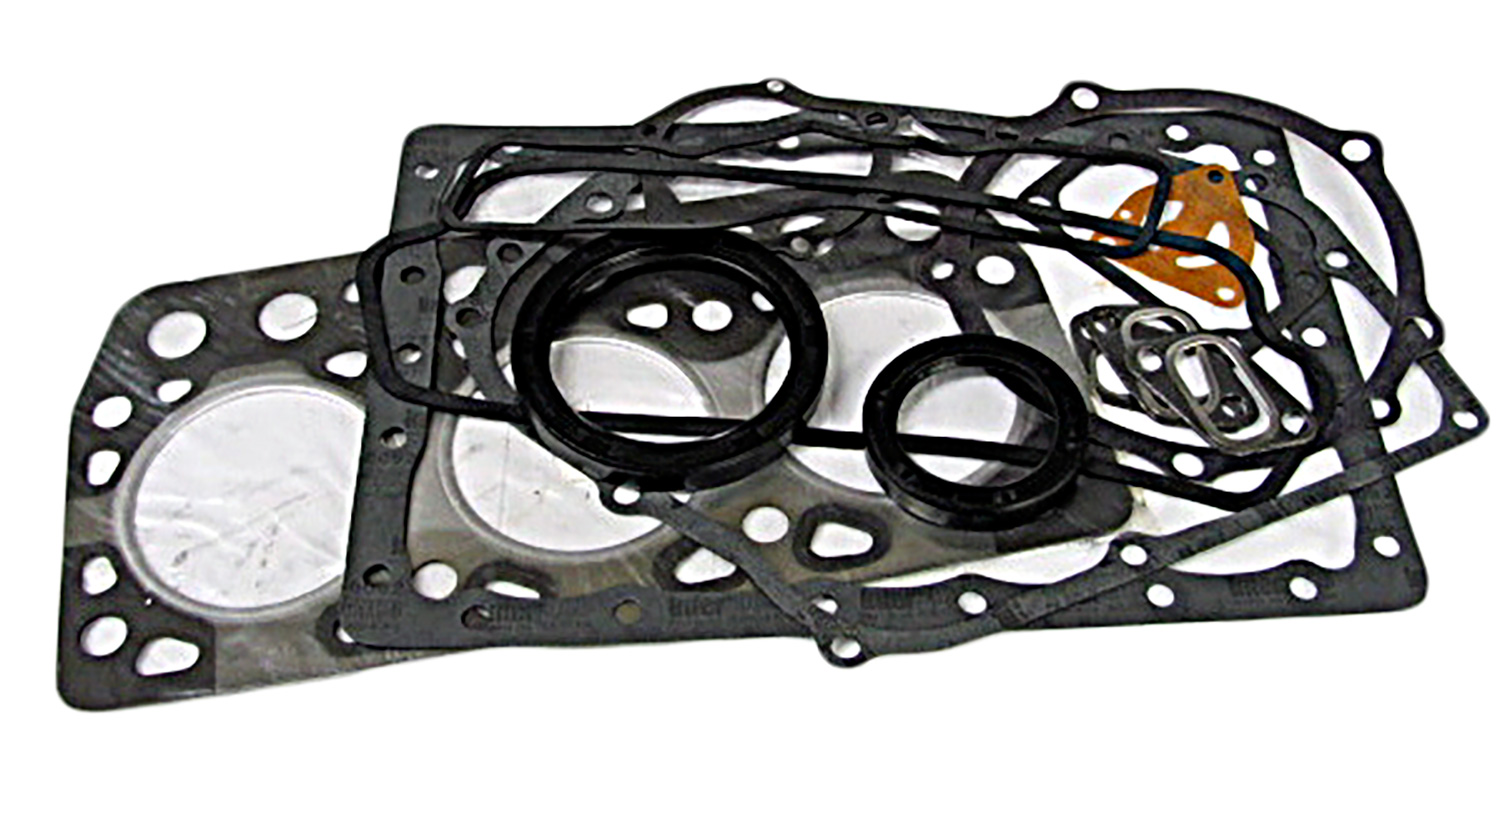 Gasket Kits For John Deere Pact Tractors. Yanmar '3t80uj' Plete Engine Gasket Kit. John Deere. John Deere Lv4010 Hst Wiring At Scoala.co